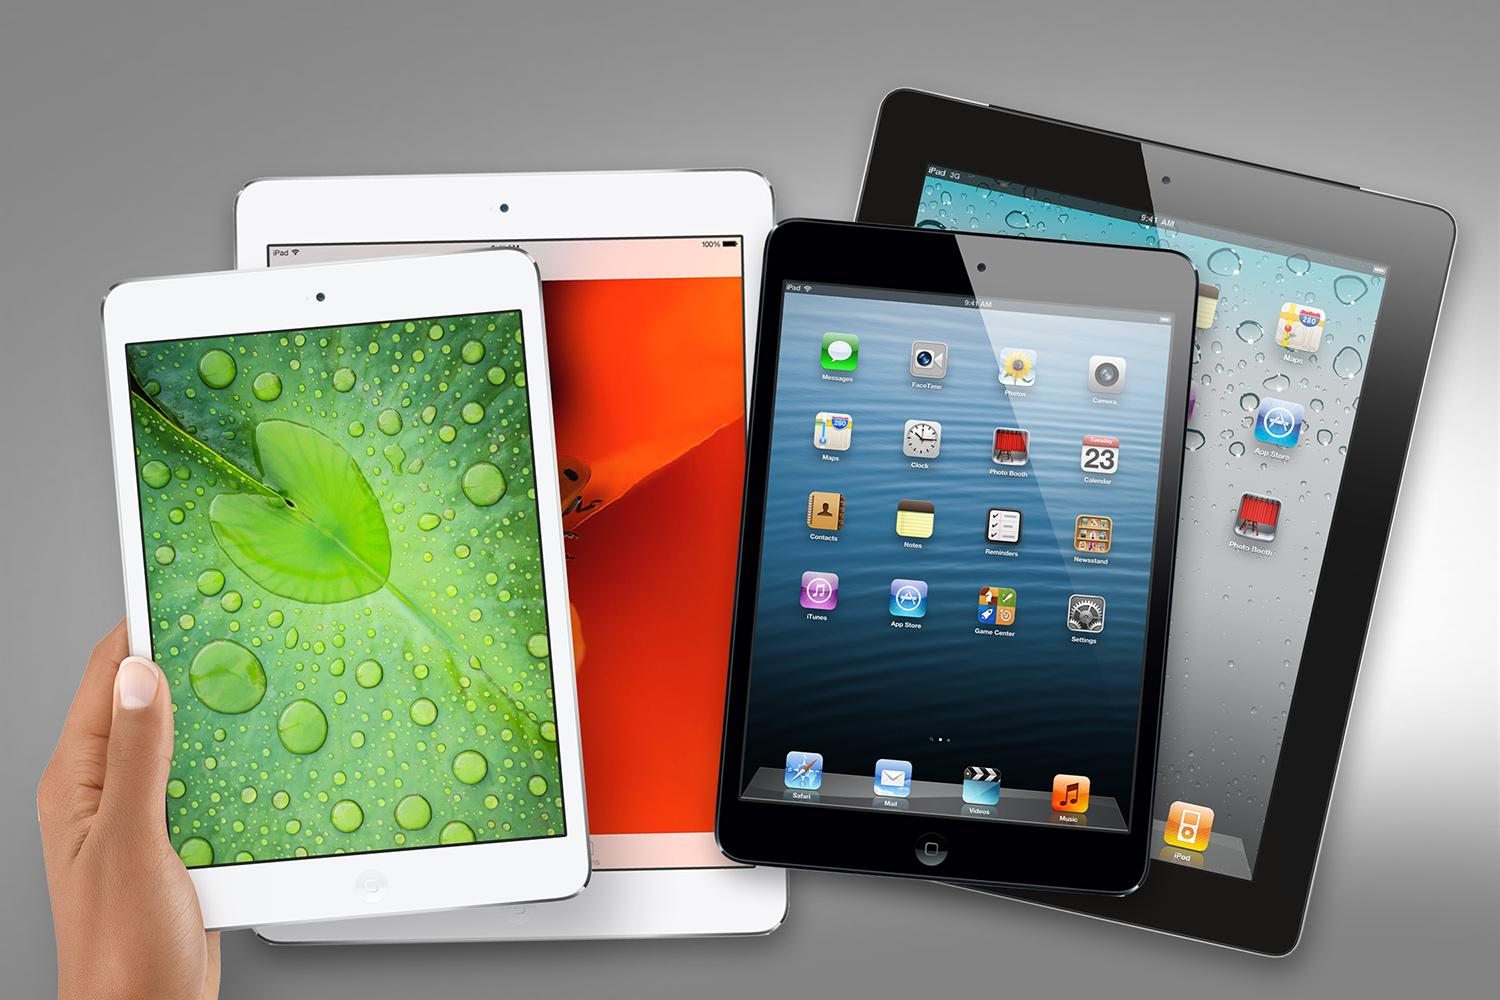 ipad-mini and ipad-air